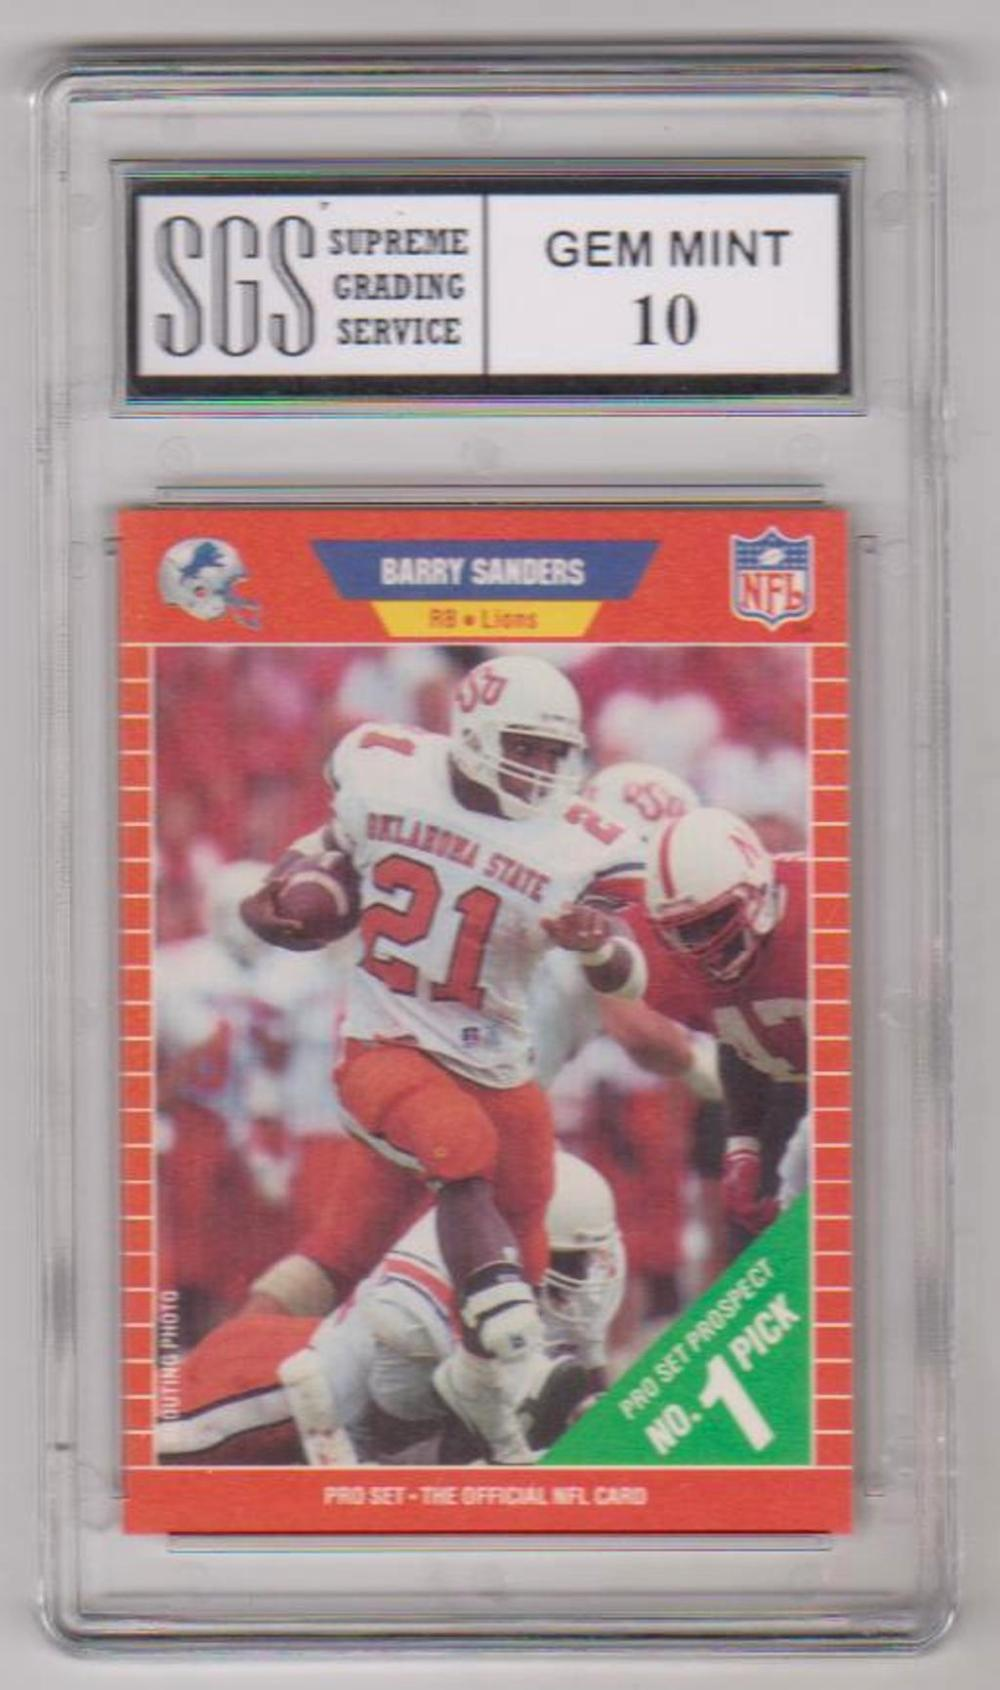 Graded Gem Mint 10 - Barry Sanders 1989 Pro Set #494 Card